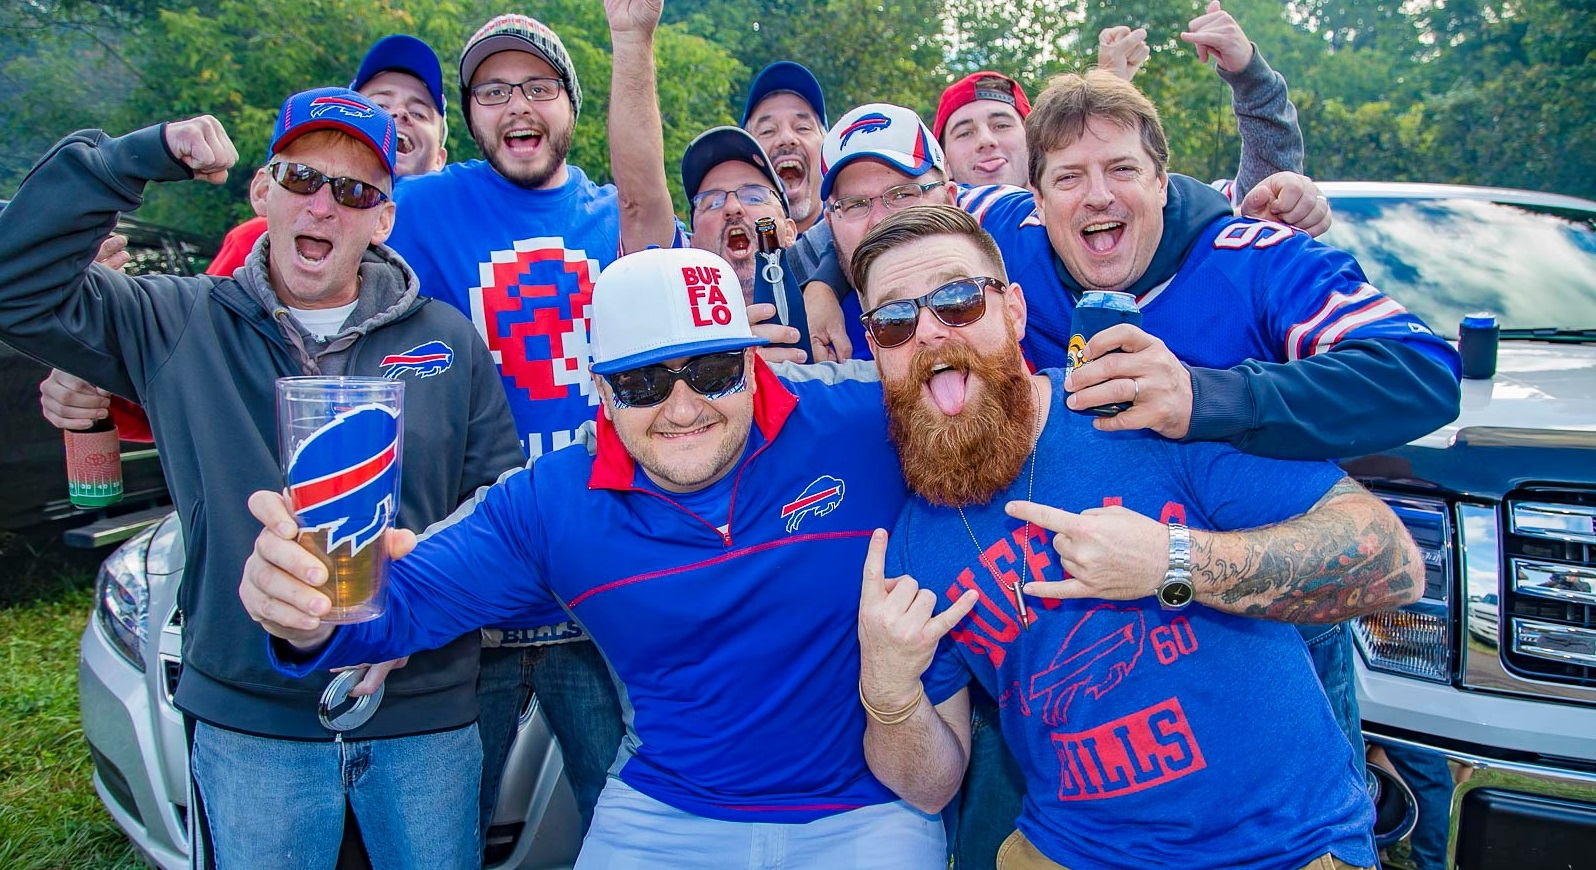 Bills fans were energized during the pregame tailgate outside Ralph Wilson Stadium. See what else was posted on Instagram by Bills fans. (Don Nieman/Special to The News)